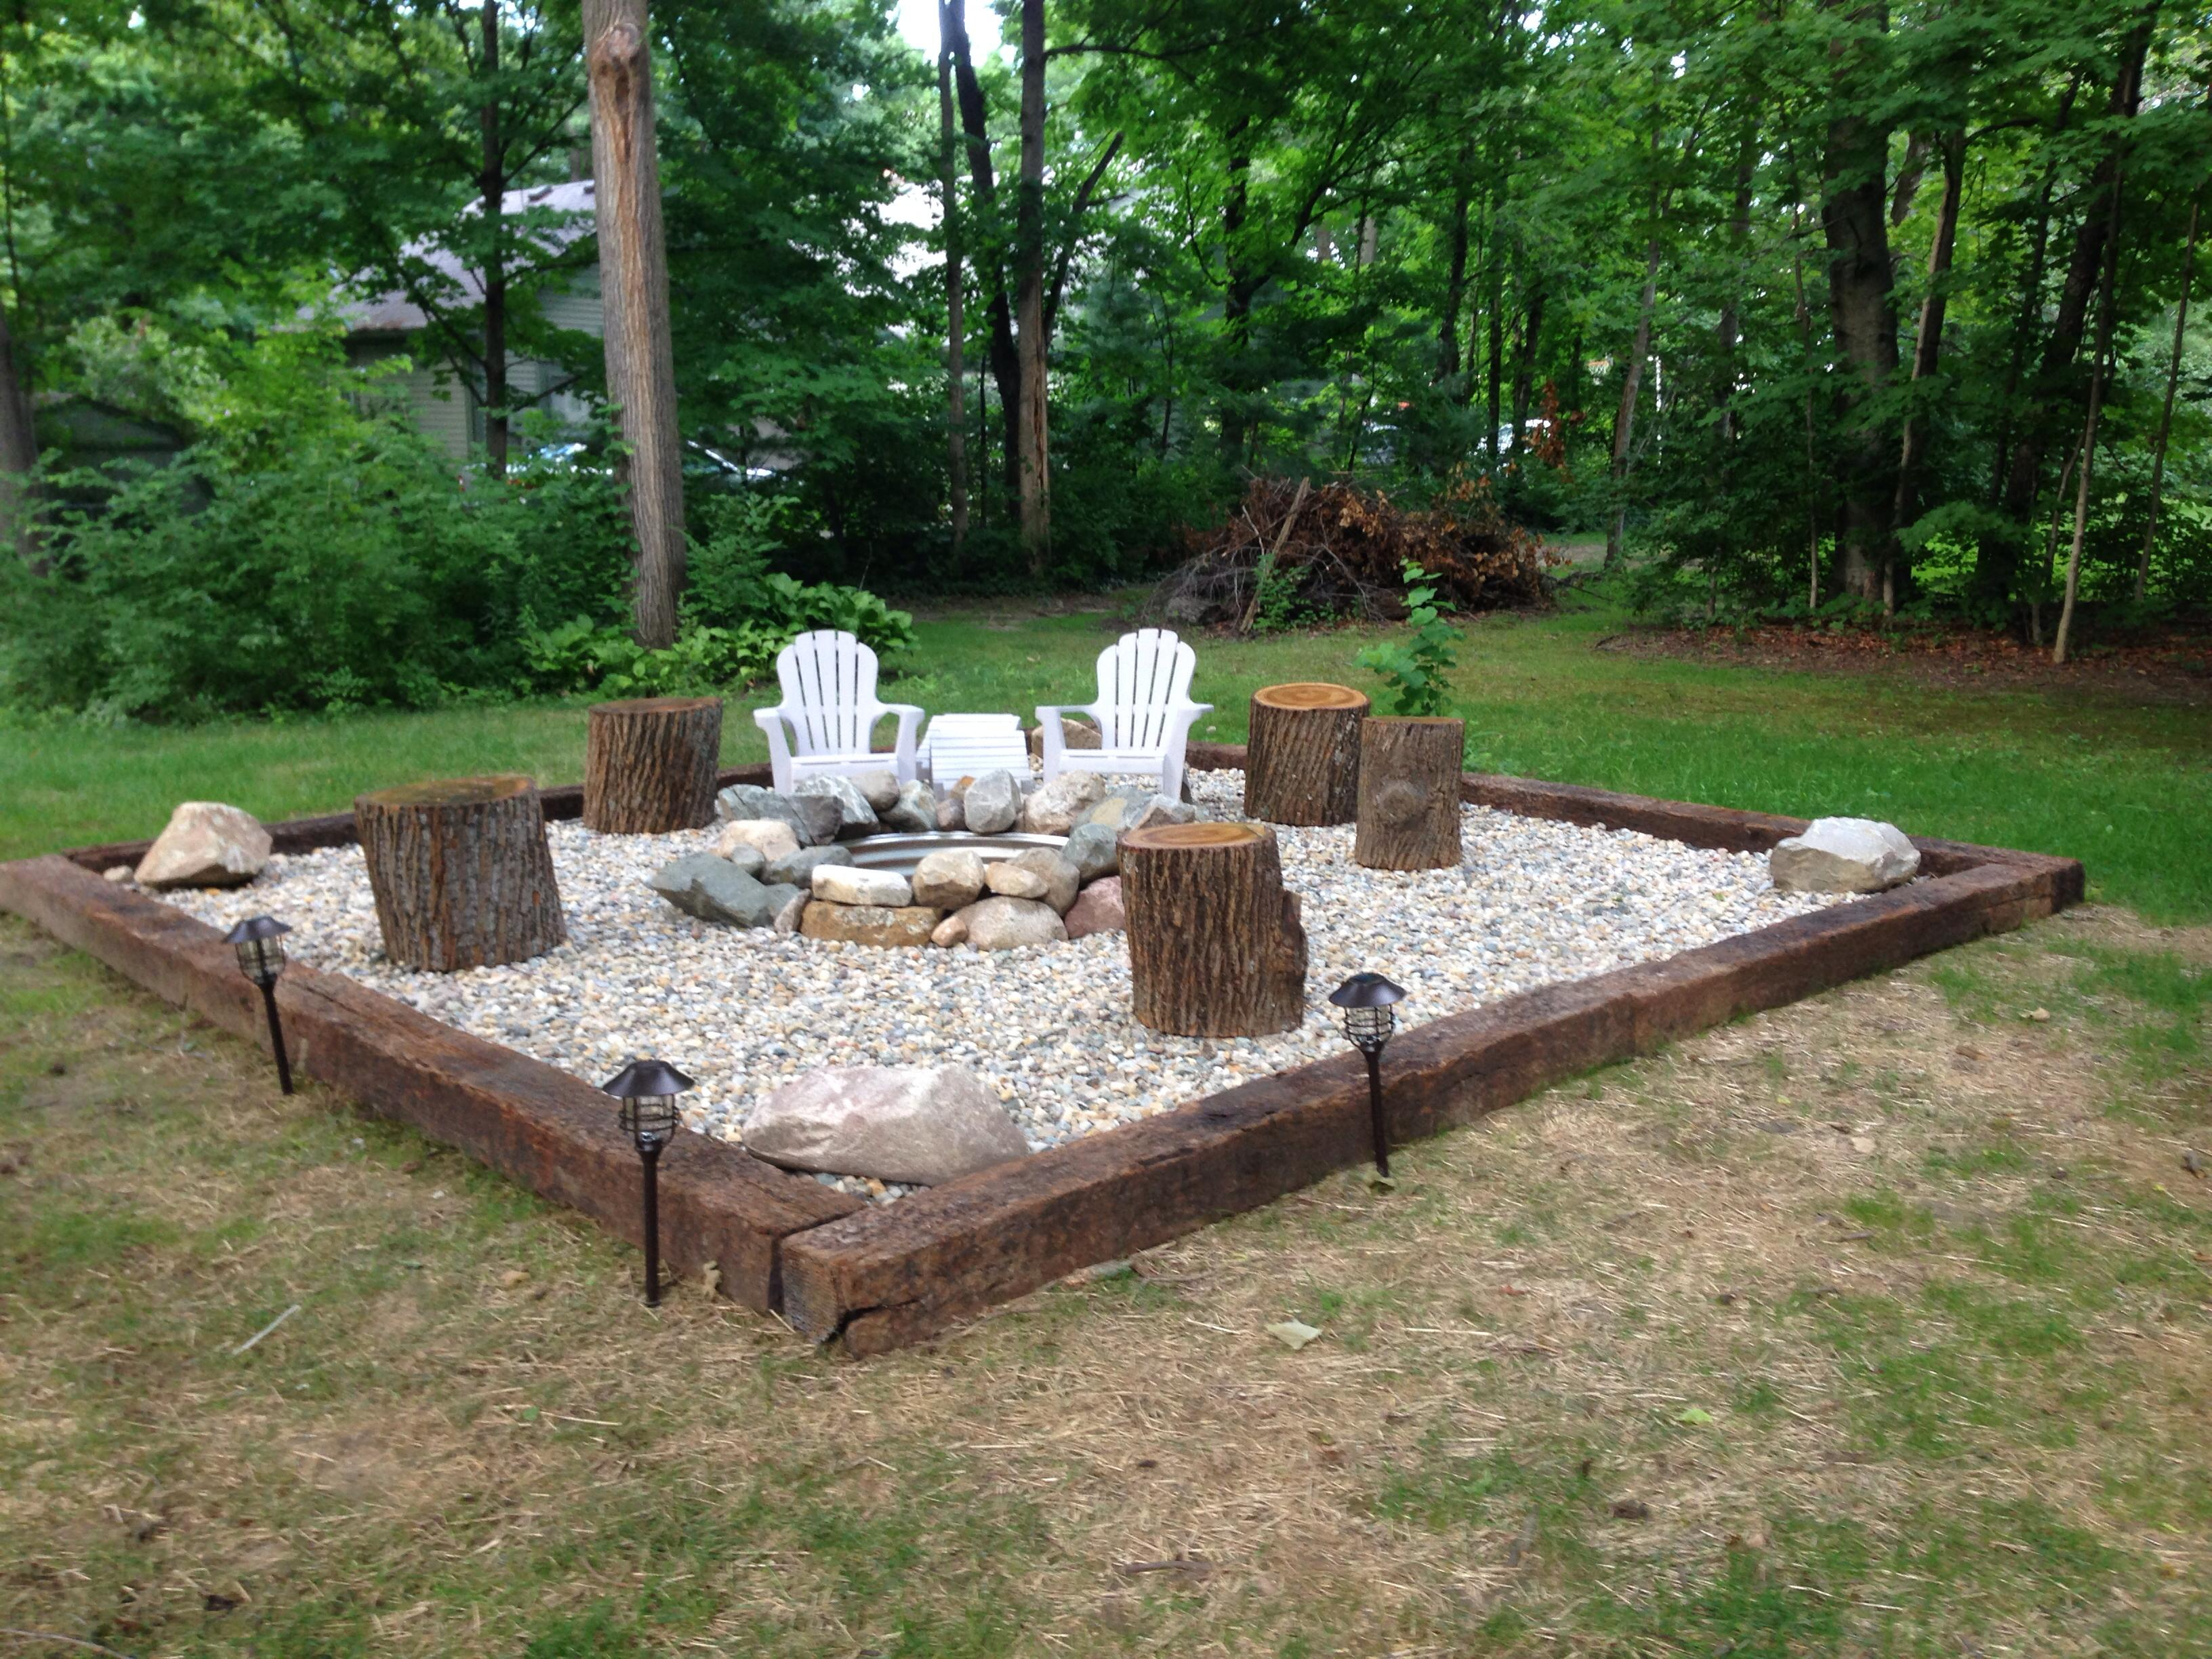 30 Unique Backyard Landscaping On A Budget Outdoor Areas Savvy regarding Cheap Backyard Landscaping Ideas